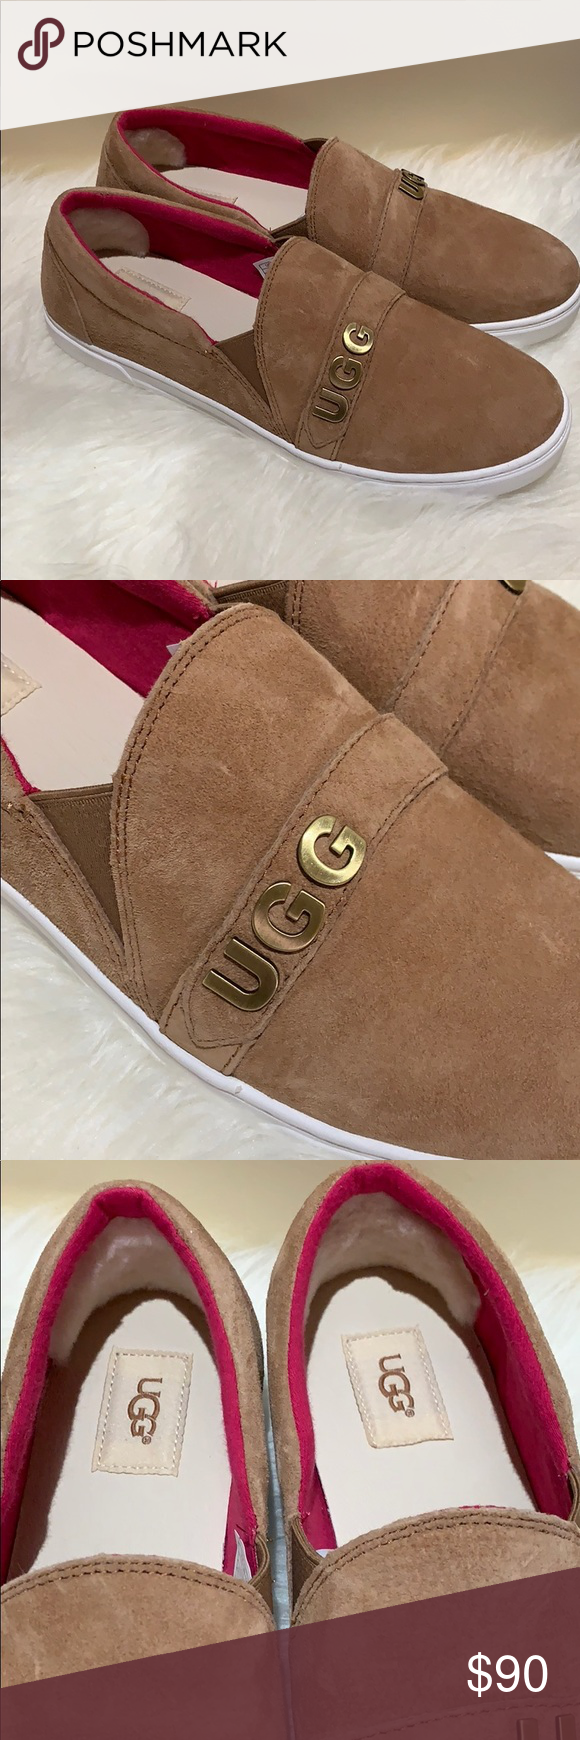 f530a55688c Ugg kitlyn charm suede sneakers loafers nwt Beautiful chestnut color ...